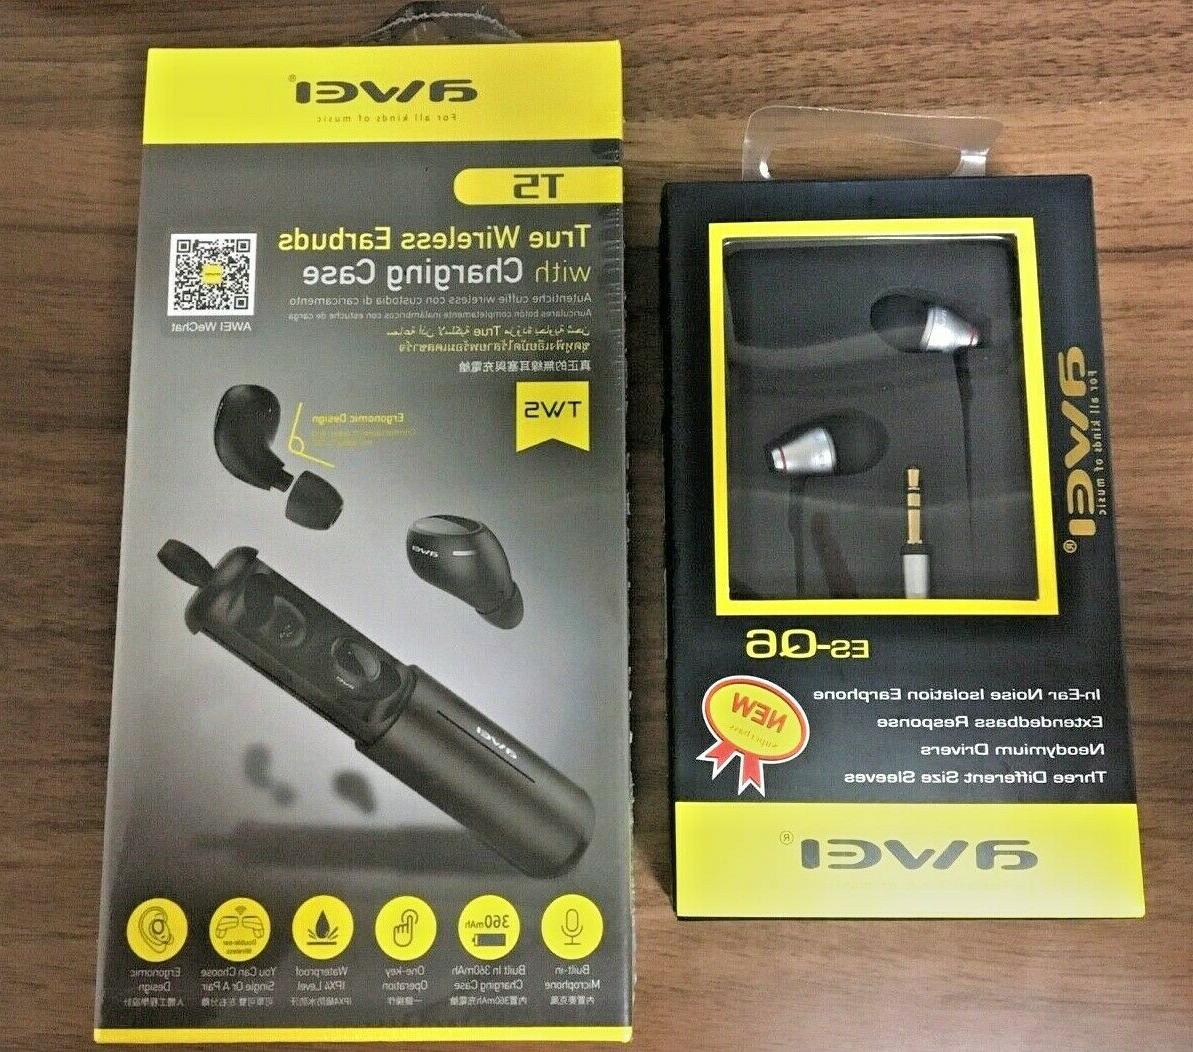 t5 true wireless earbuds with charging case